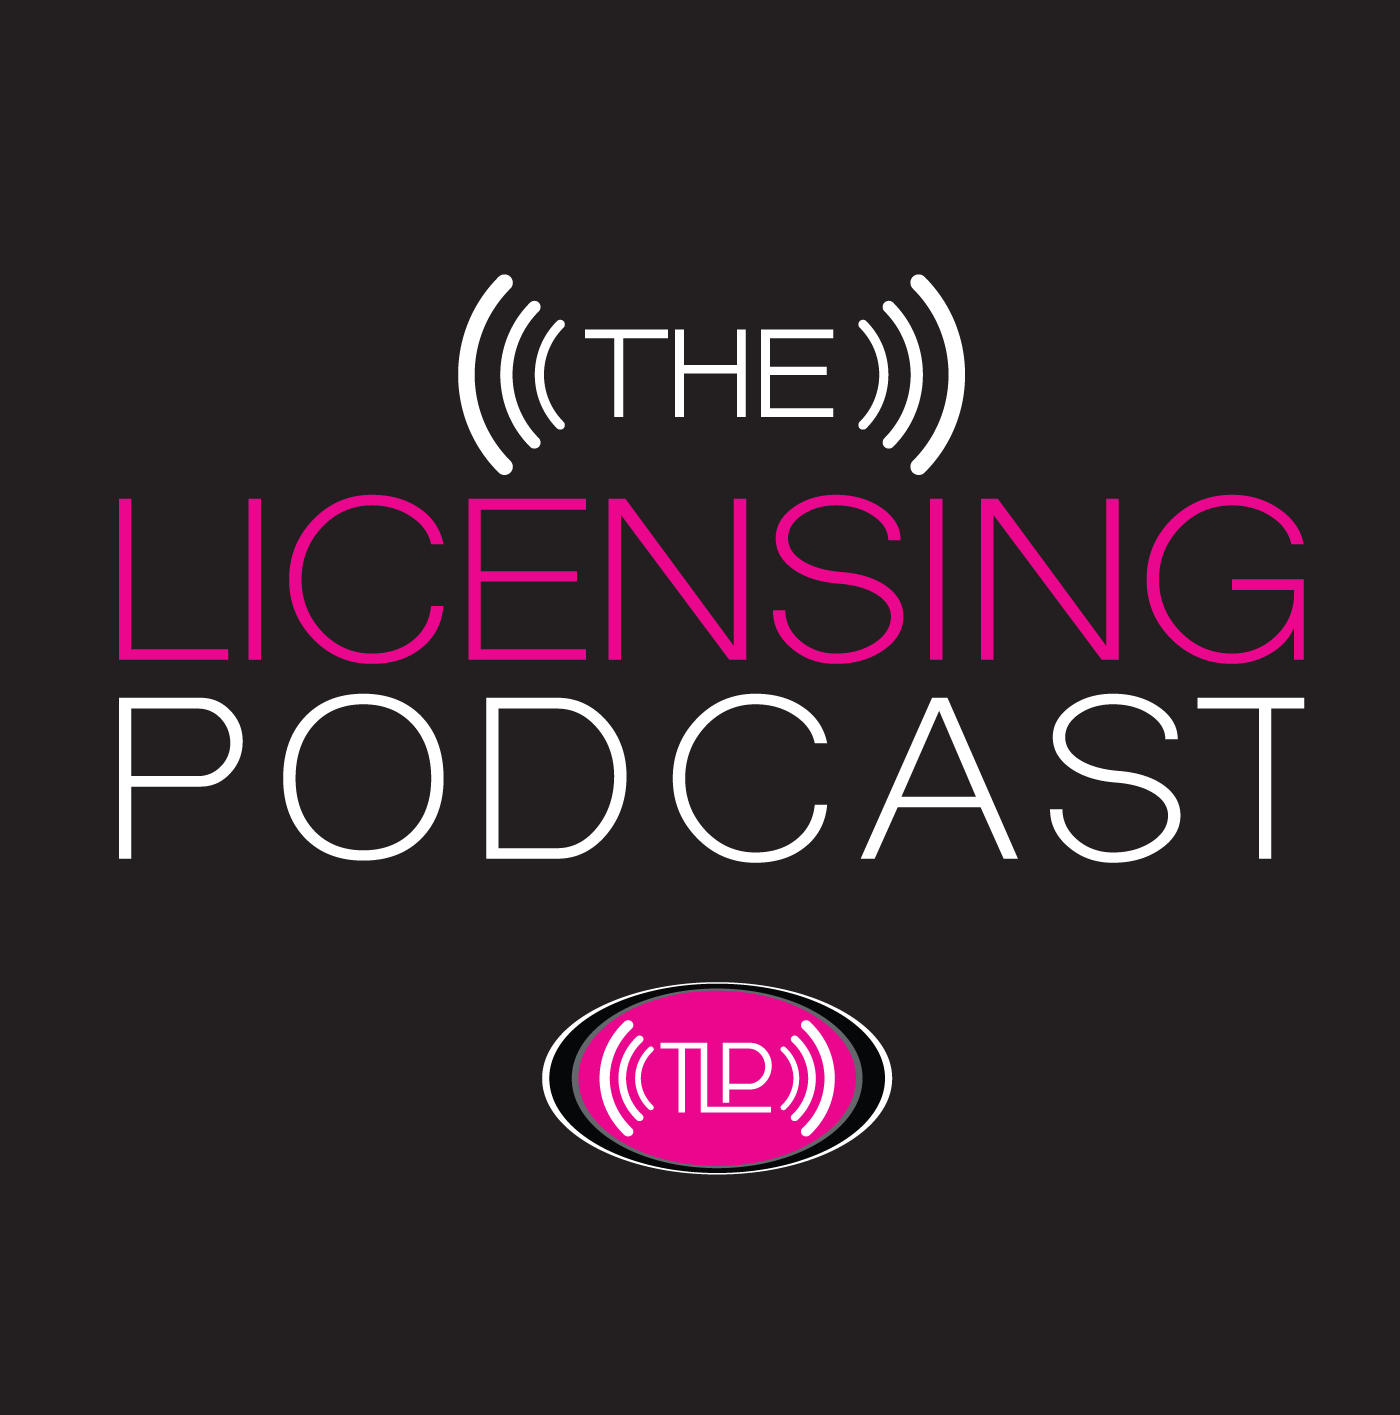 The Licensing Podcast